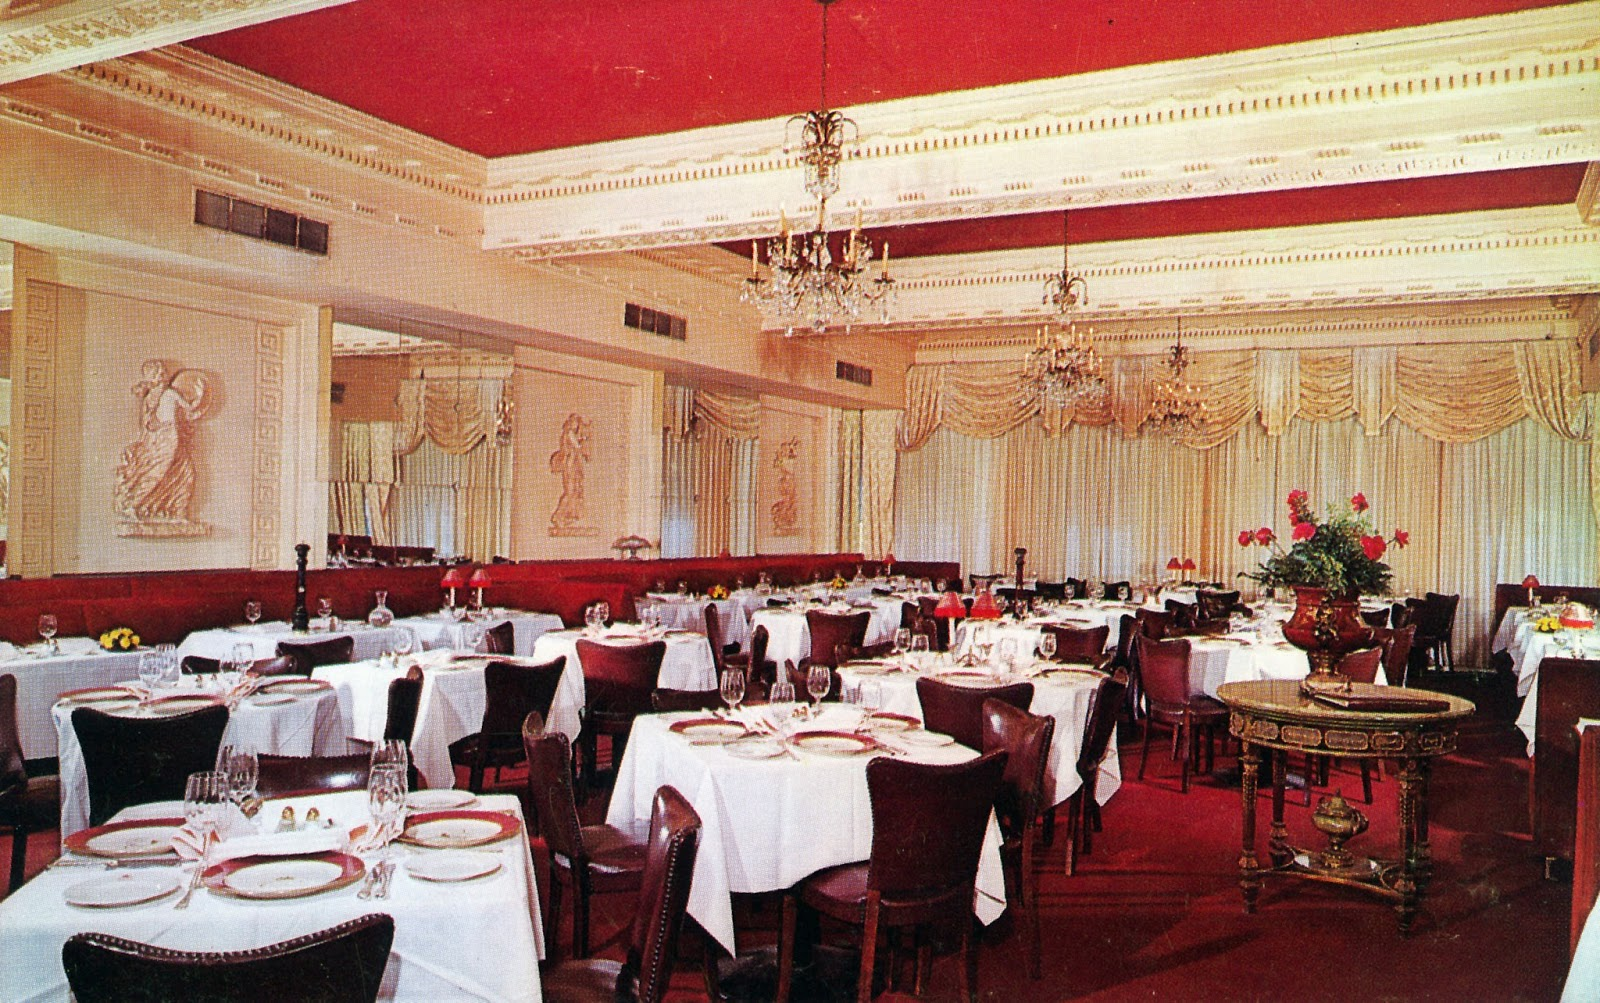 fine dining in washington, dc in the 1950s | streets of washington